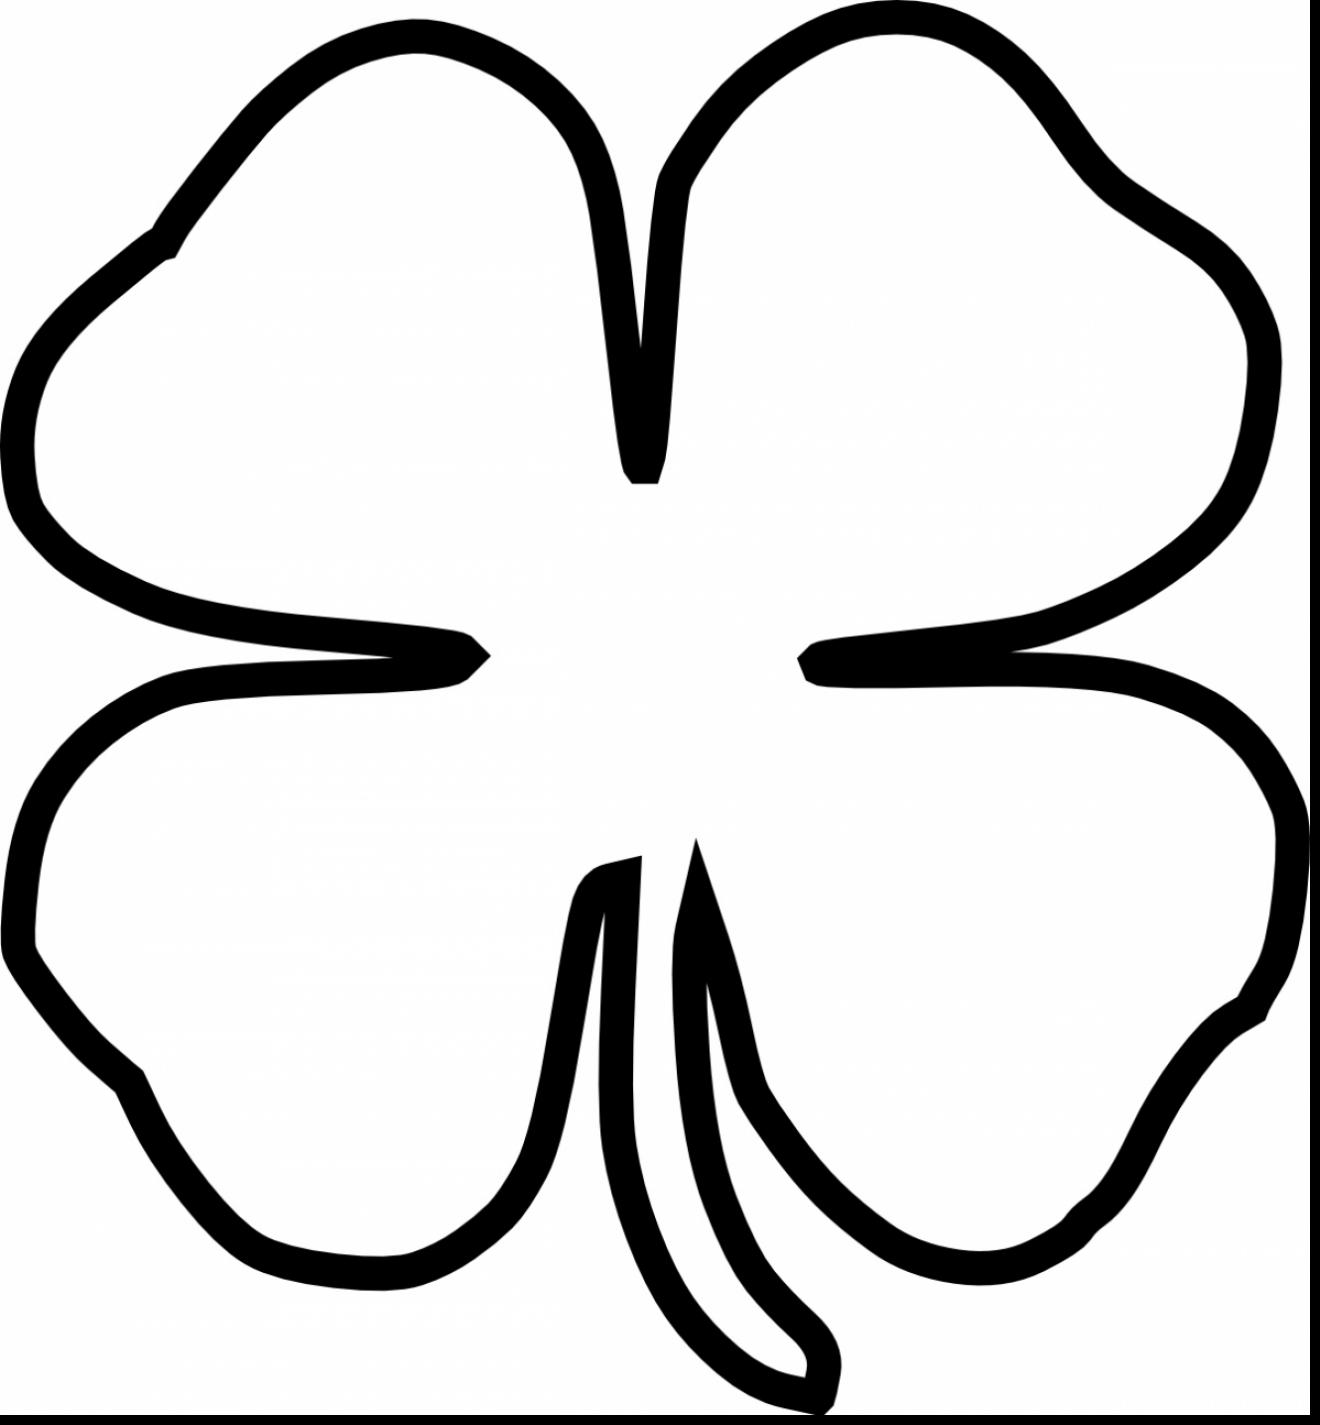 4 leaf clover clipart 20 free Cliparts | Download images ...